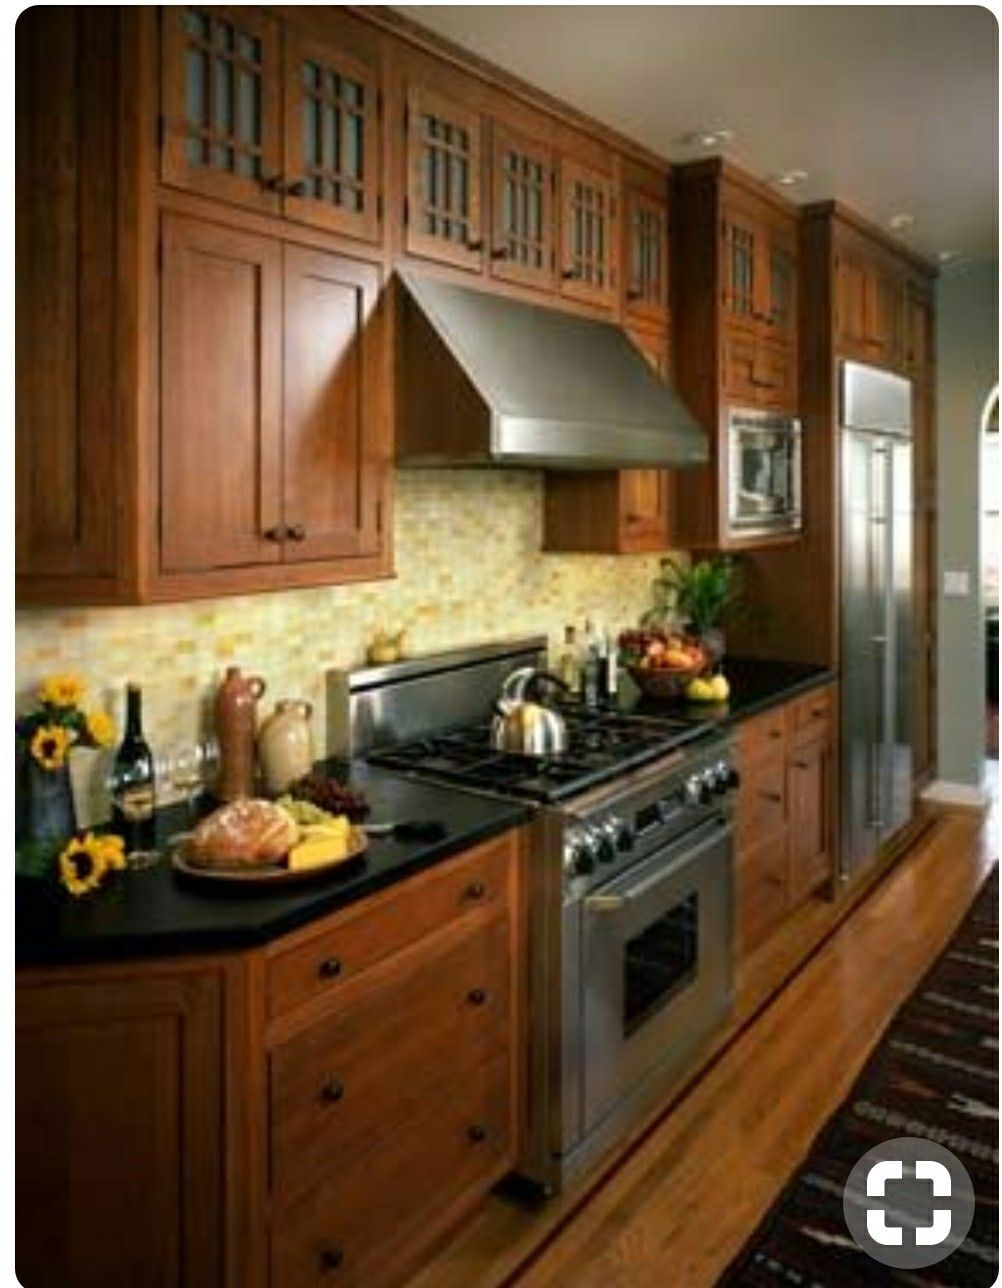 Pin By Missmercurymeghan On Home Decore Kitchen Cabinet